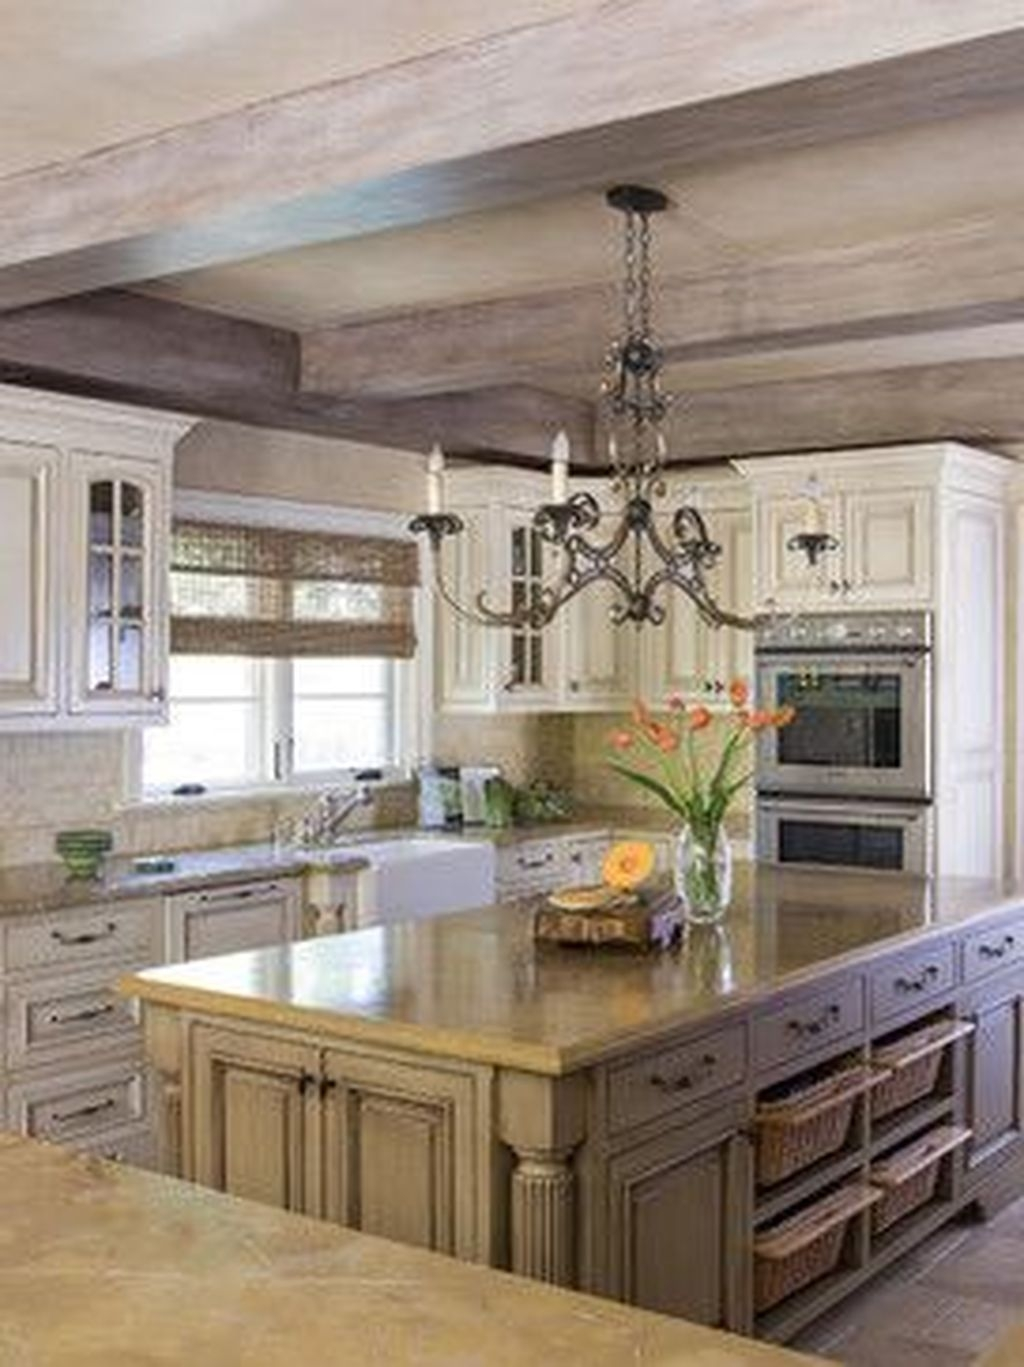 The Best French Country Style Kitchen Decor Ideas 39